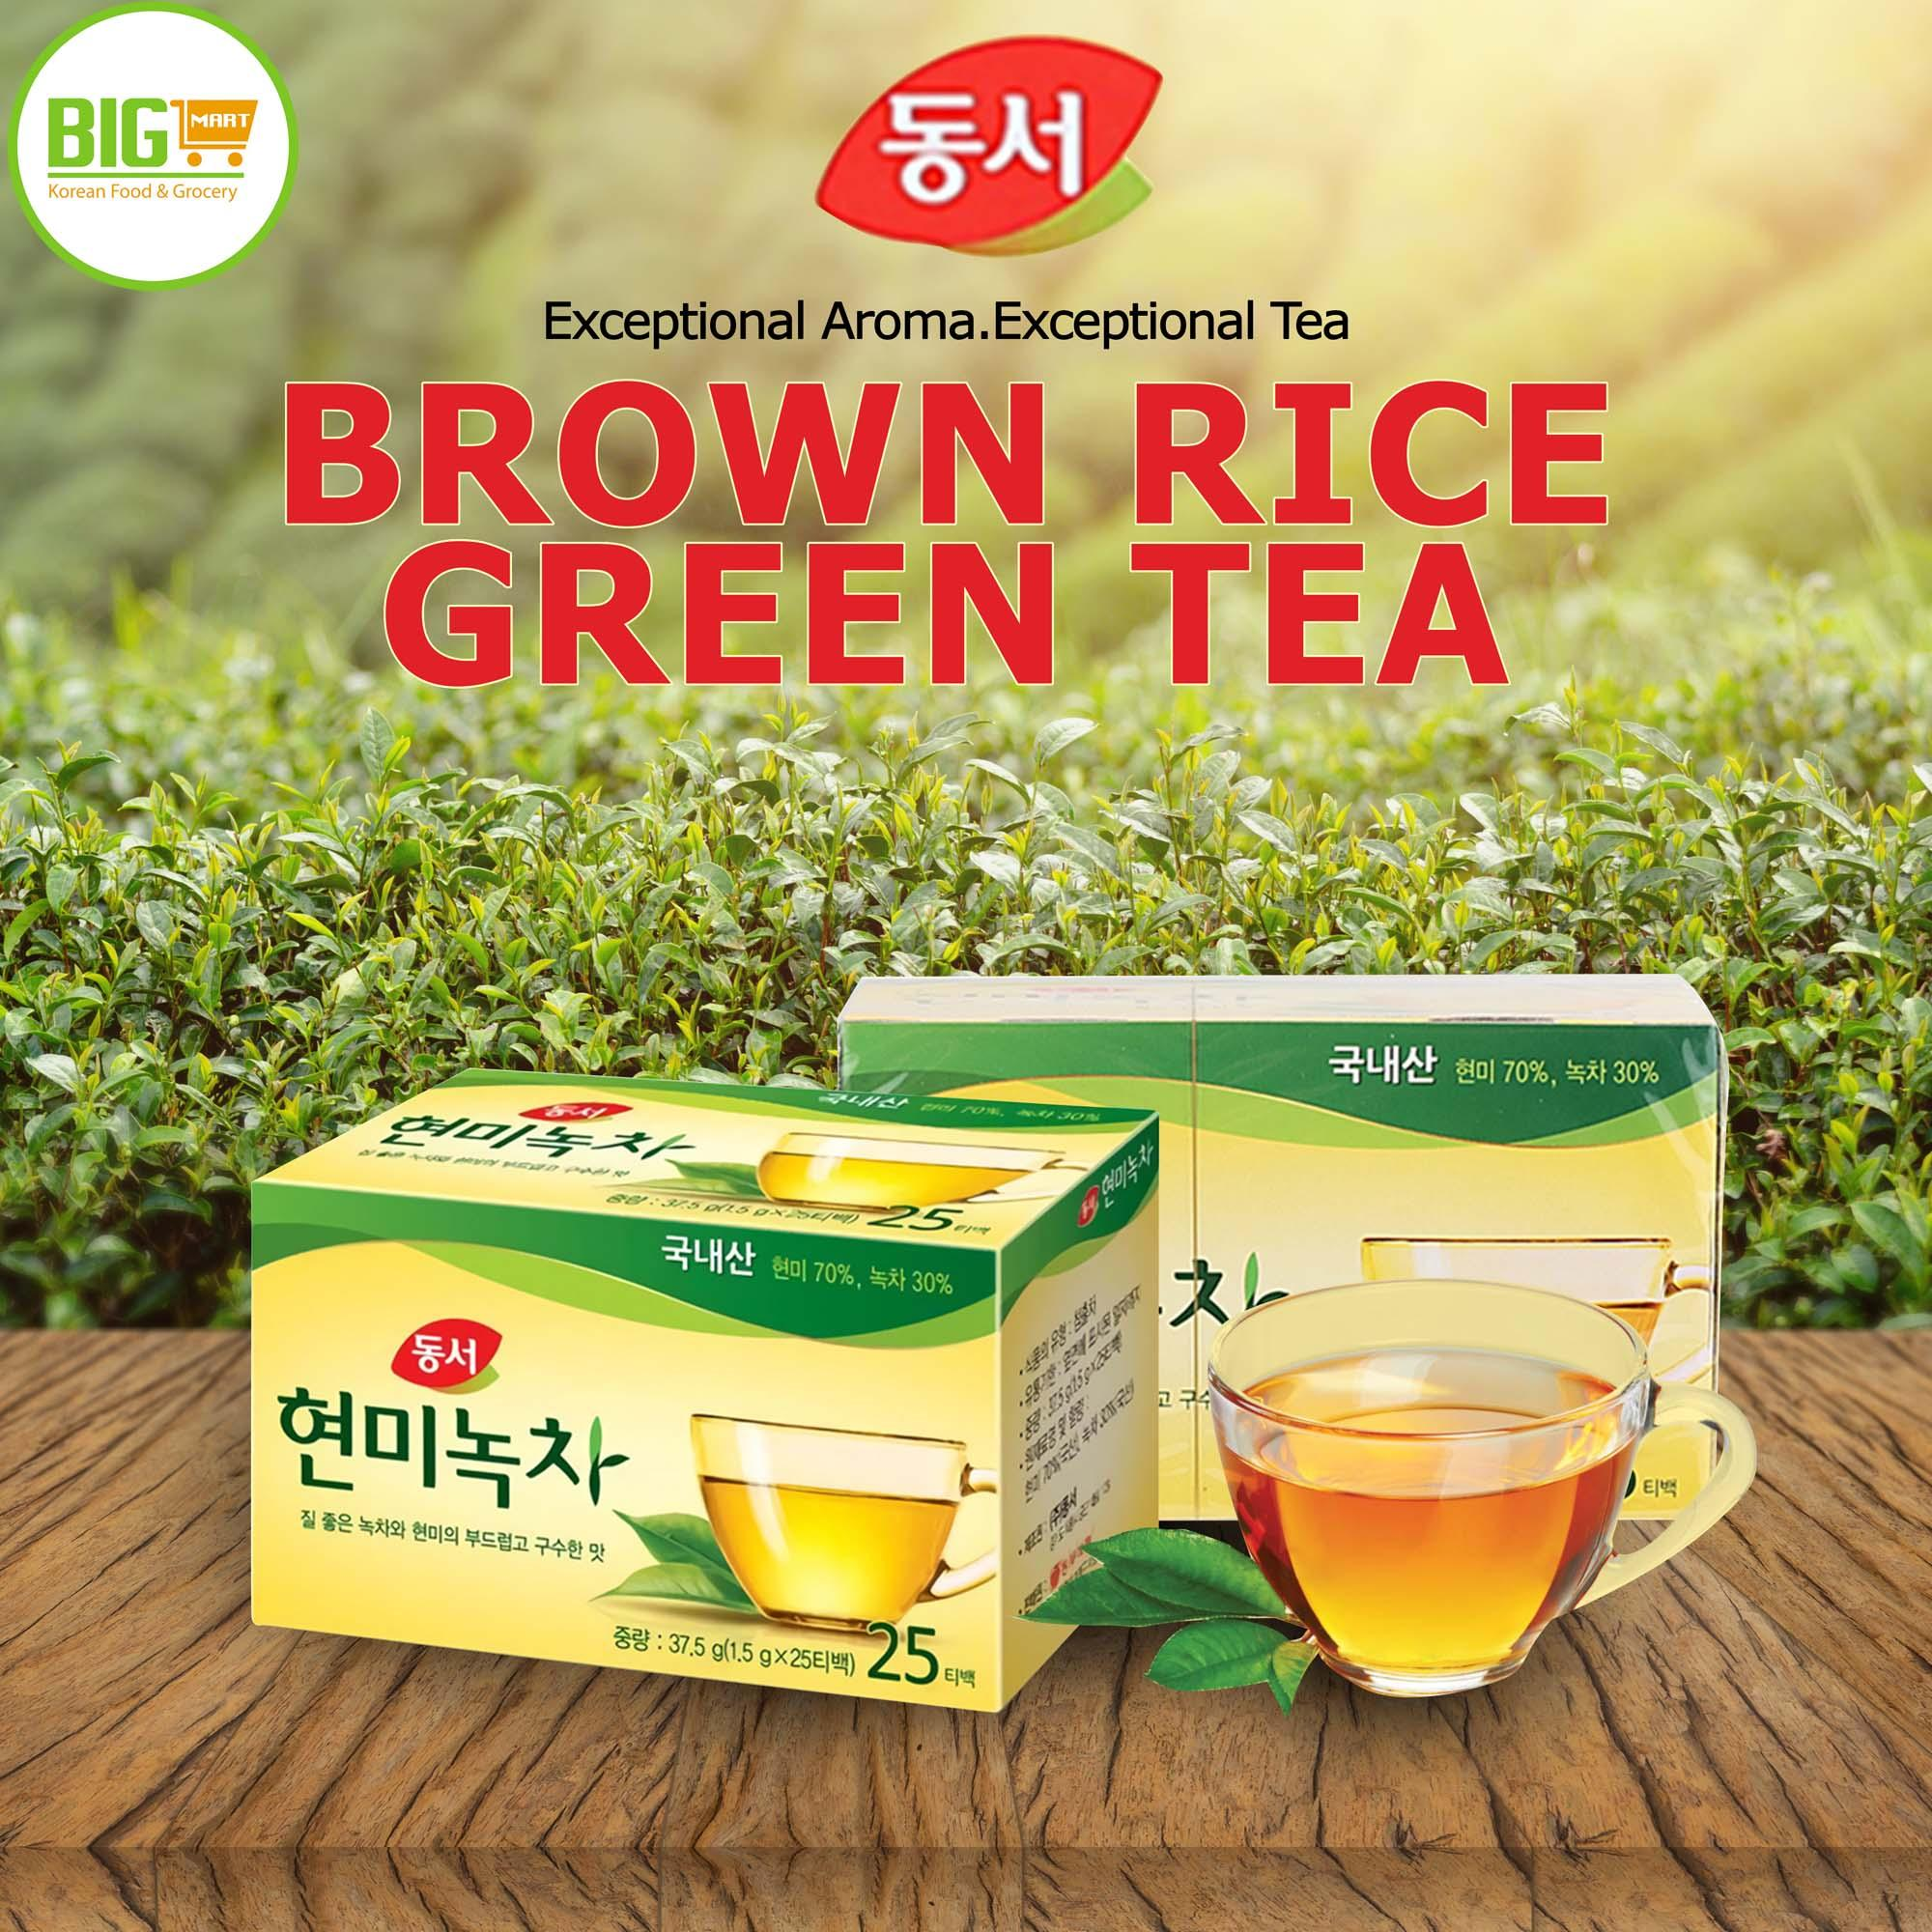 Image result for DONGSUH Korean Brown Rice Green Tea 25T box